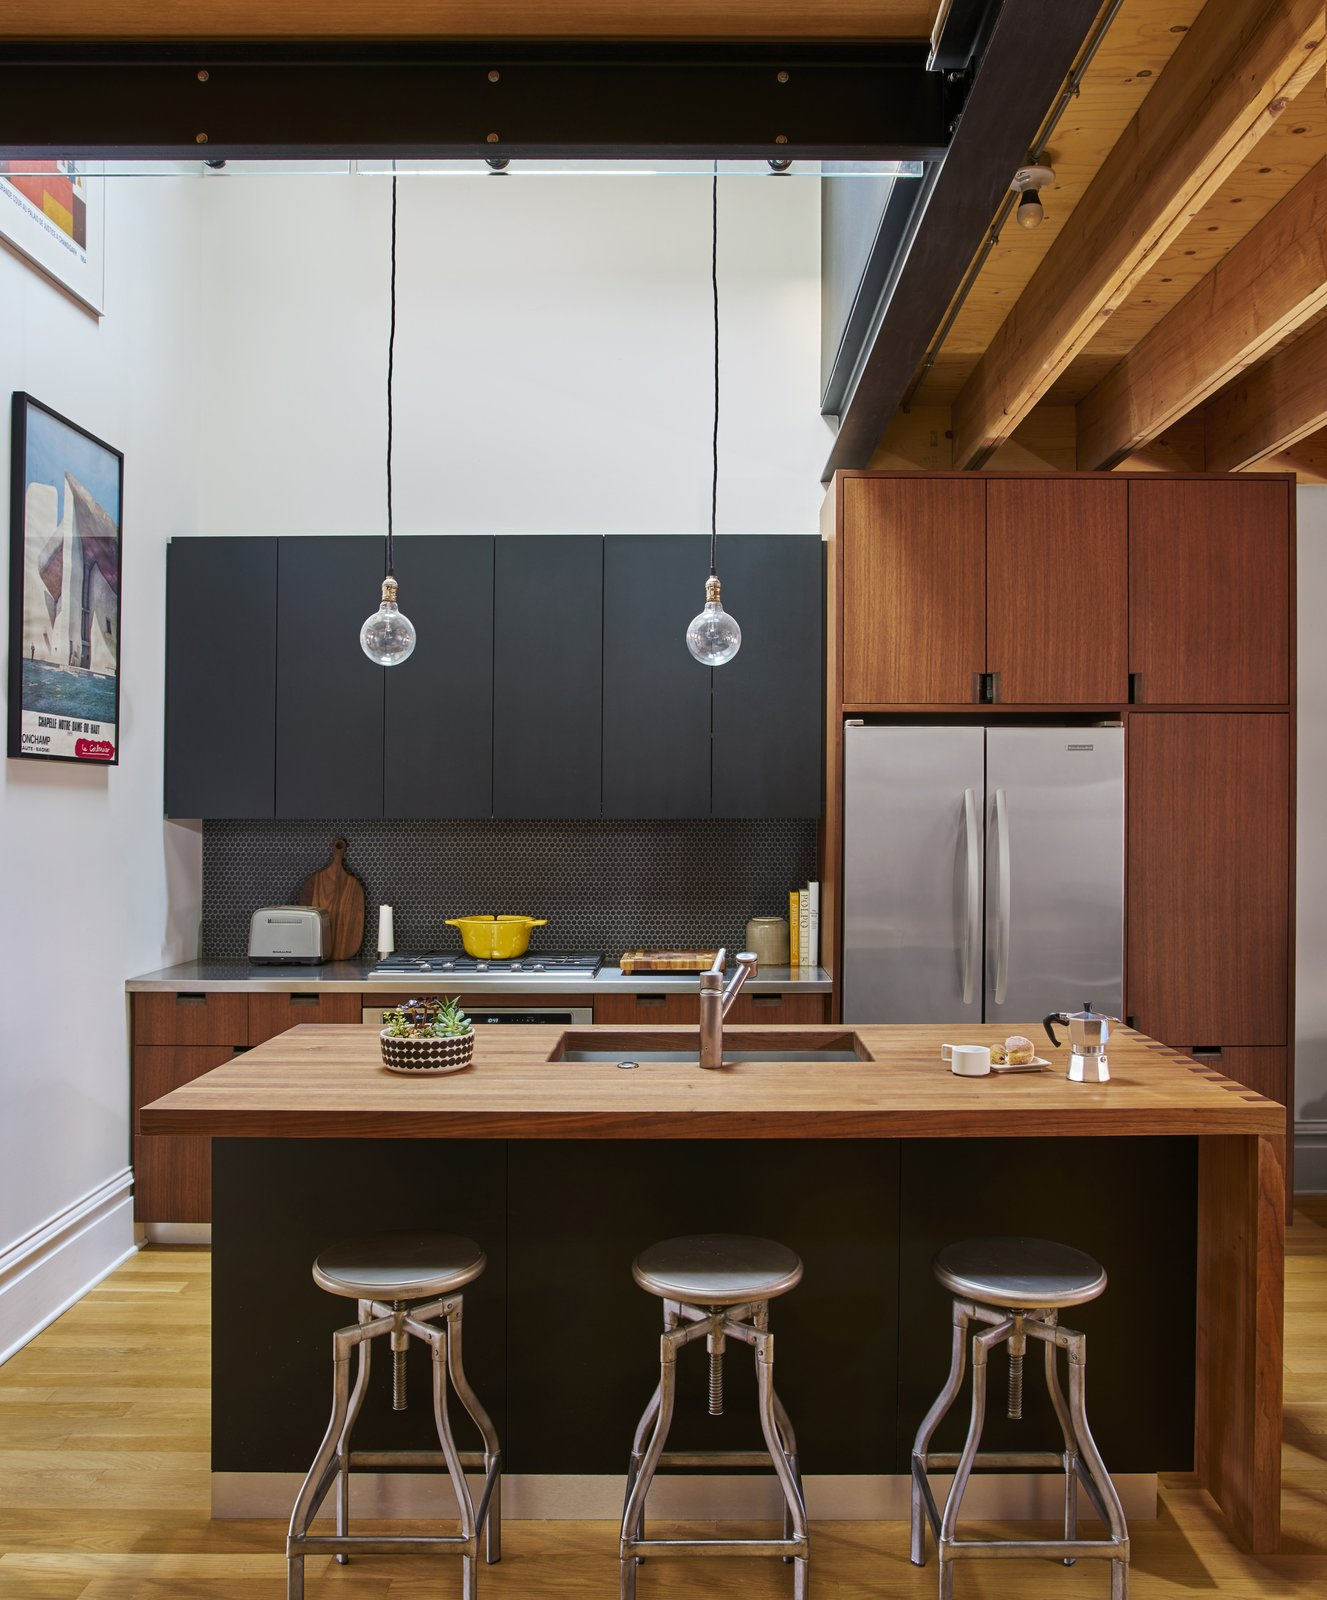 #kitchen #Chicago #lighting #wood #light #barstool   60+ Modern Lighting Solutions by Dwell from Batwing Kitchen Remodel